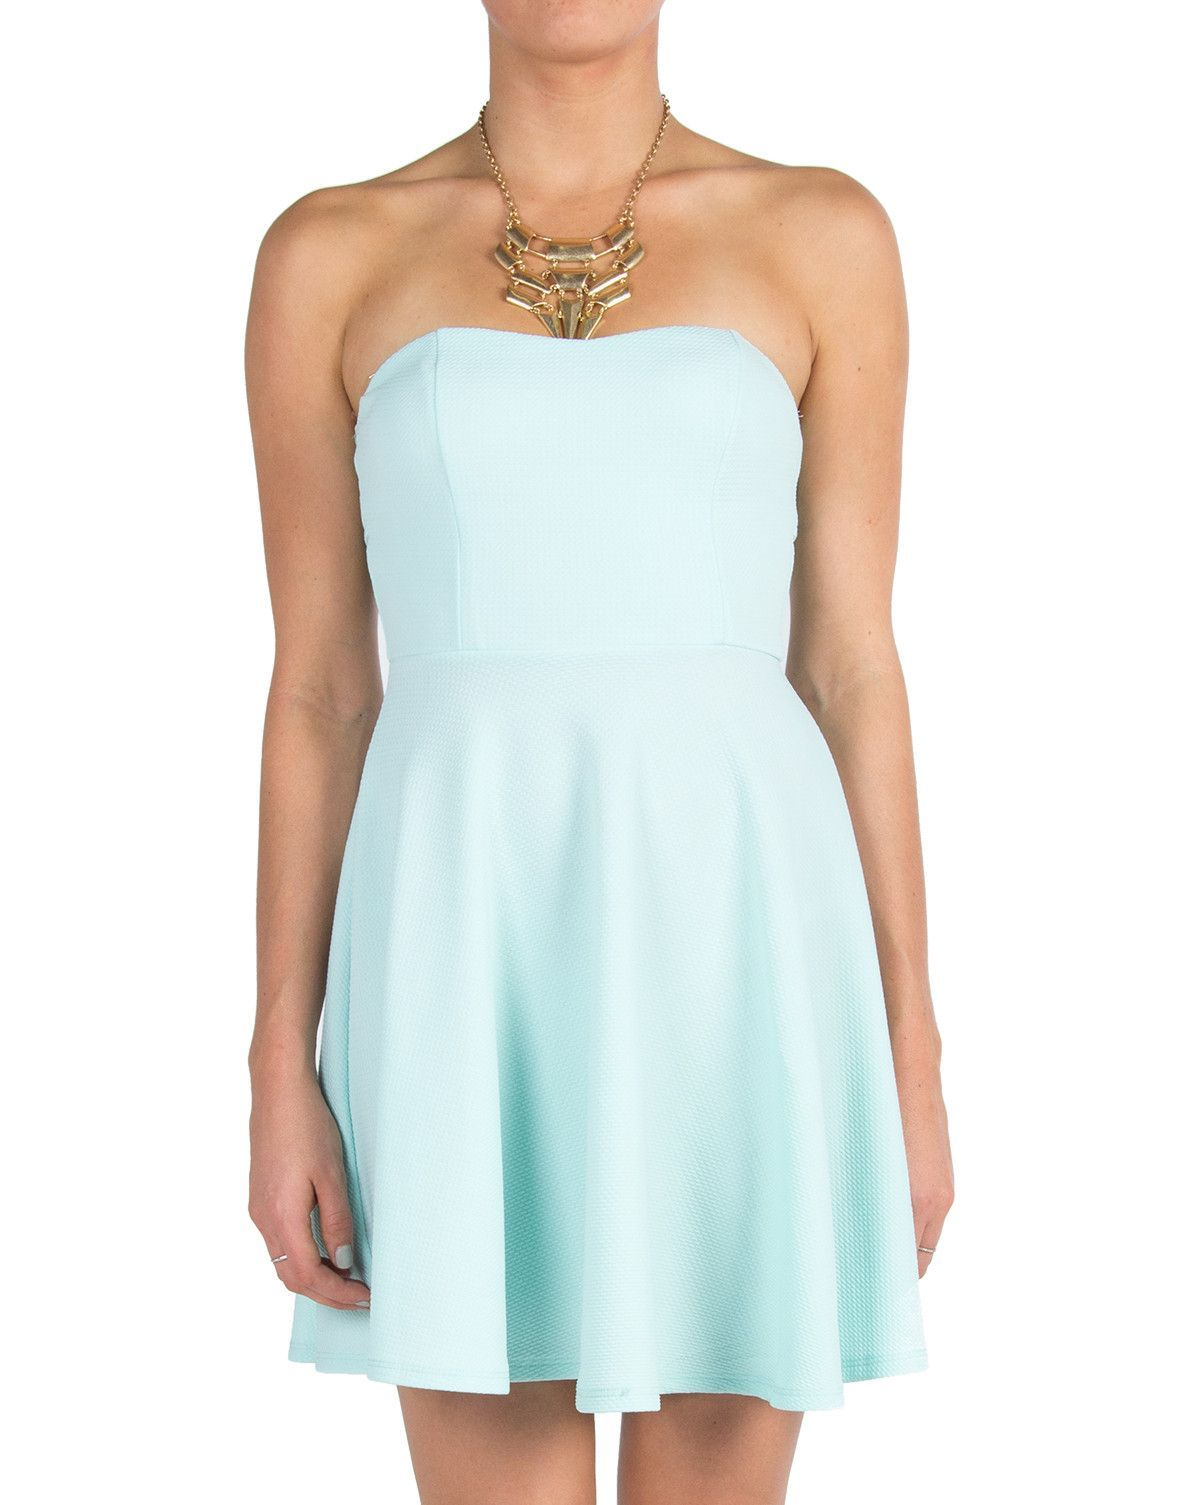 Sweetheart Textured Skater Dress - Mint - Medium